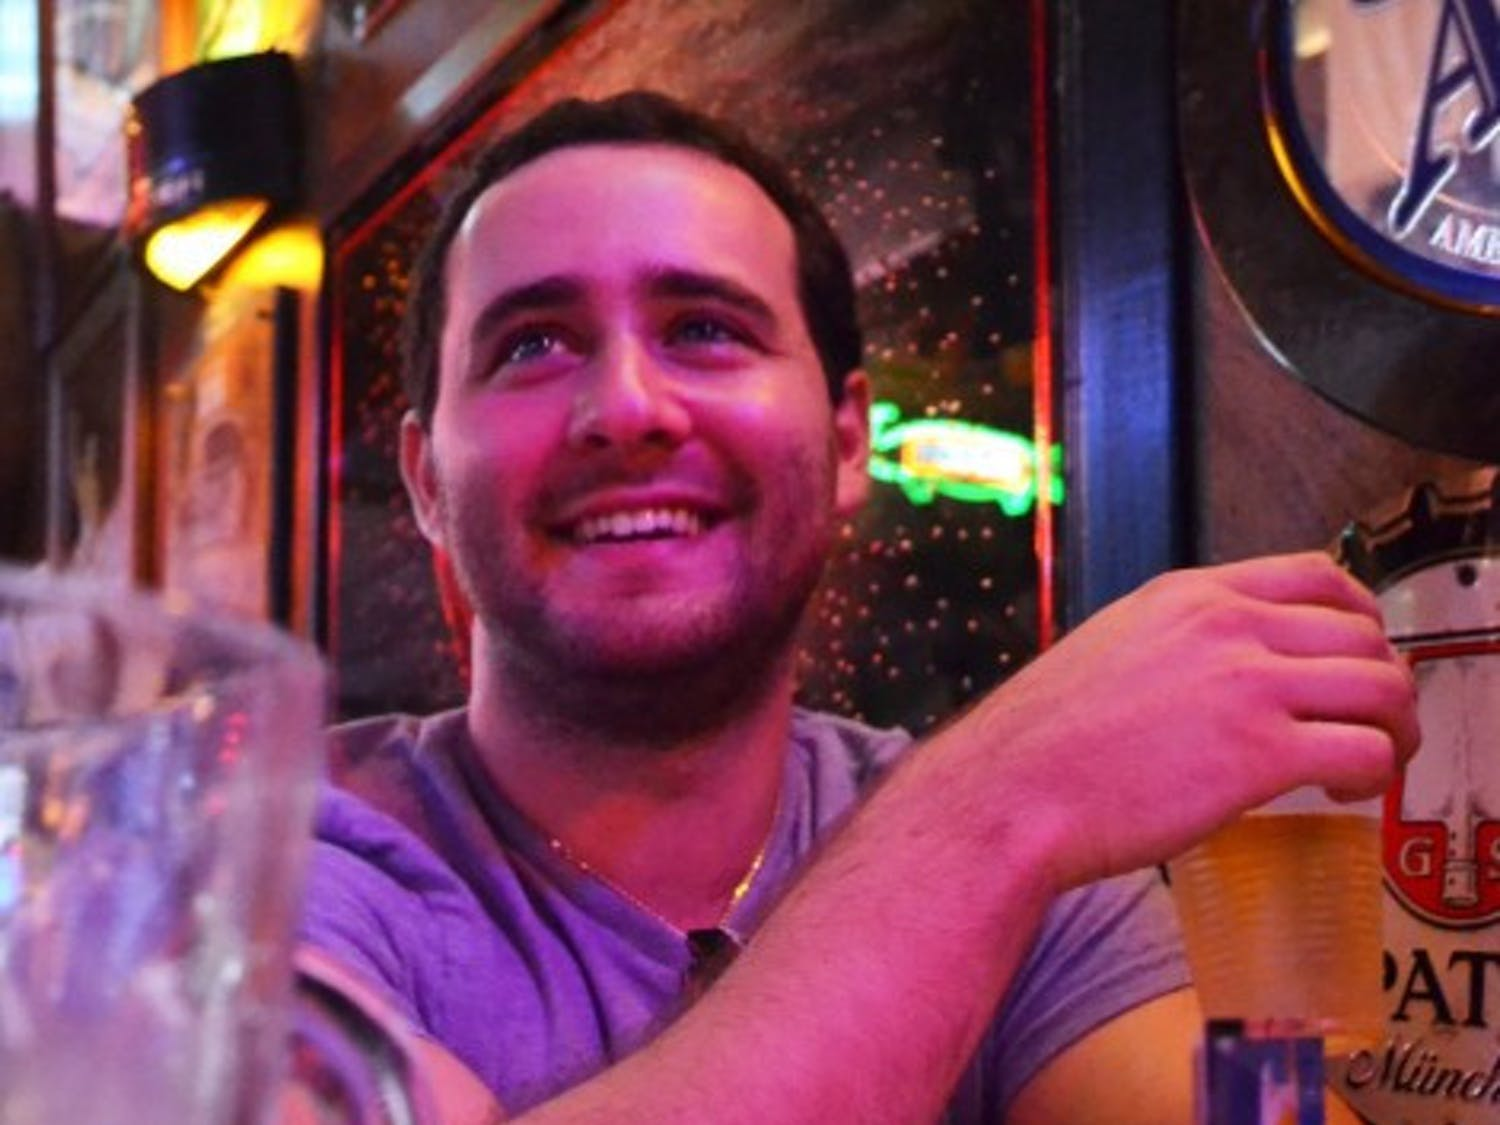 Senior Alex Solomon, enjoys a beer at Salty Dog Saloon before his class.